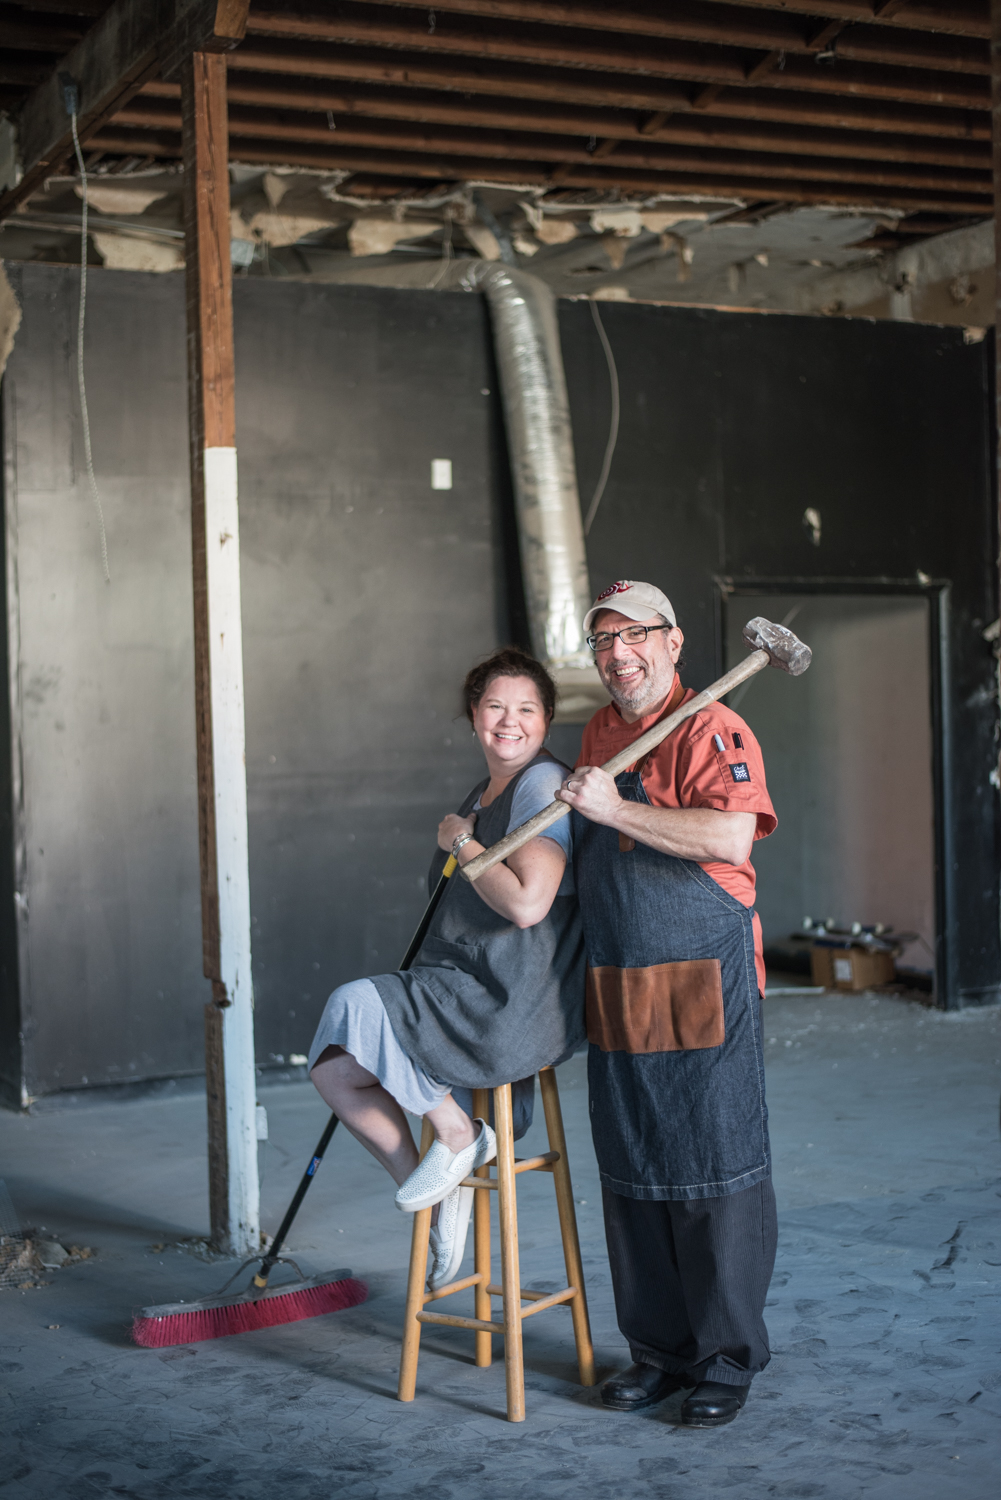 Allison and Kurt D'Aurizzio, owners of Flour and Fig bakehouse in Jacksonville